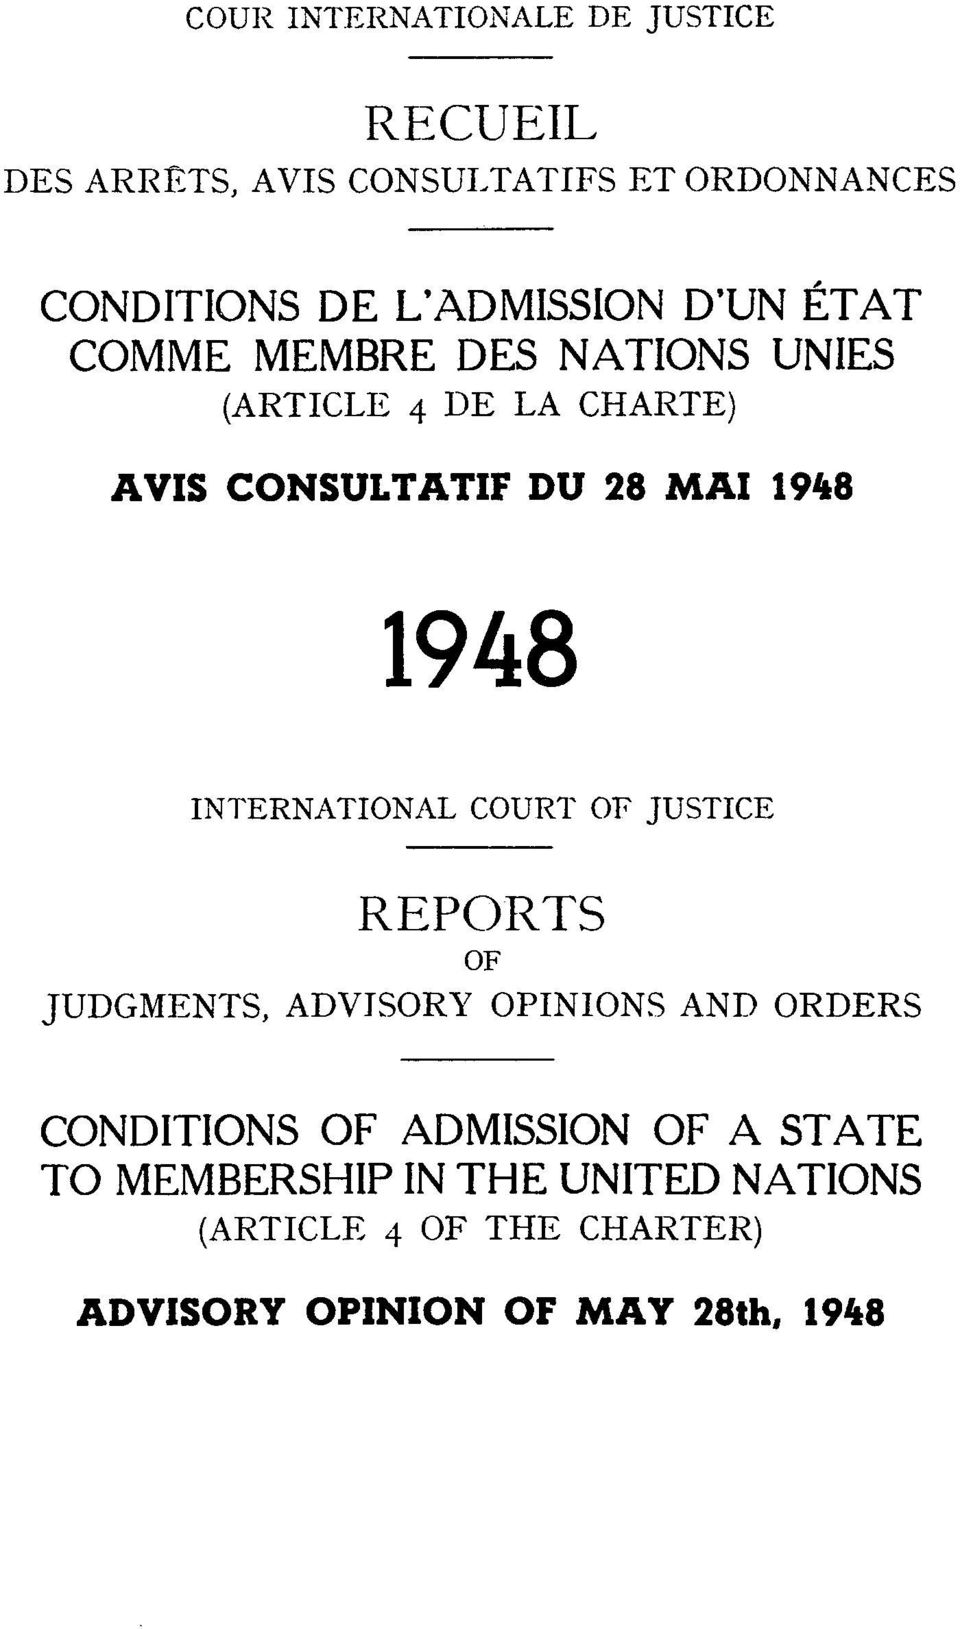 1948 INTERNATIONAL COURT OF JUSTICE REPORTS OF JUDGMENTS, ADVJSOR17 OPINIONS AND ORDERS CONDITIONS OF